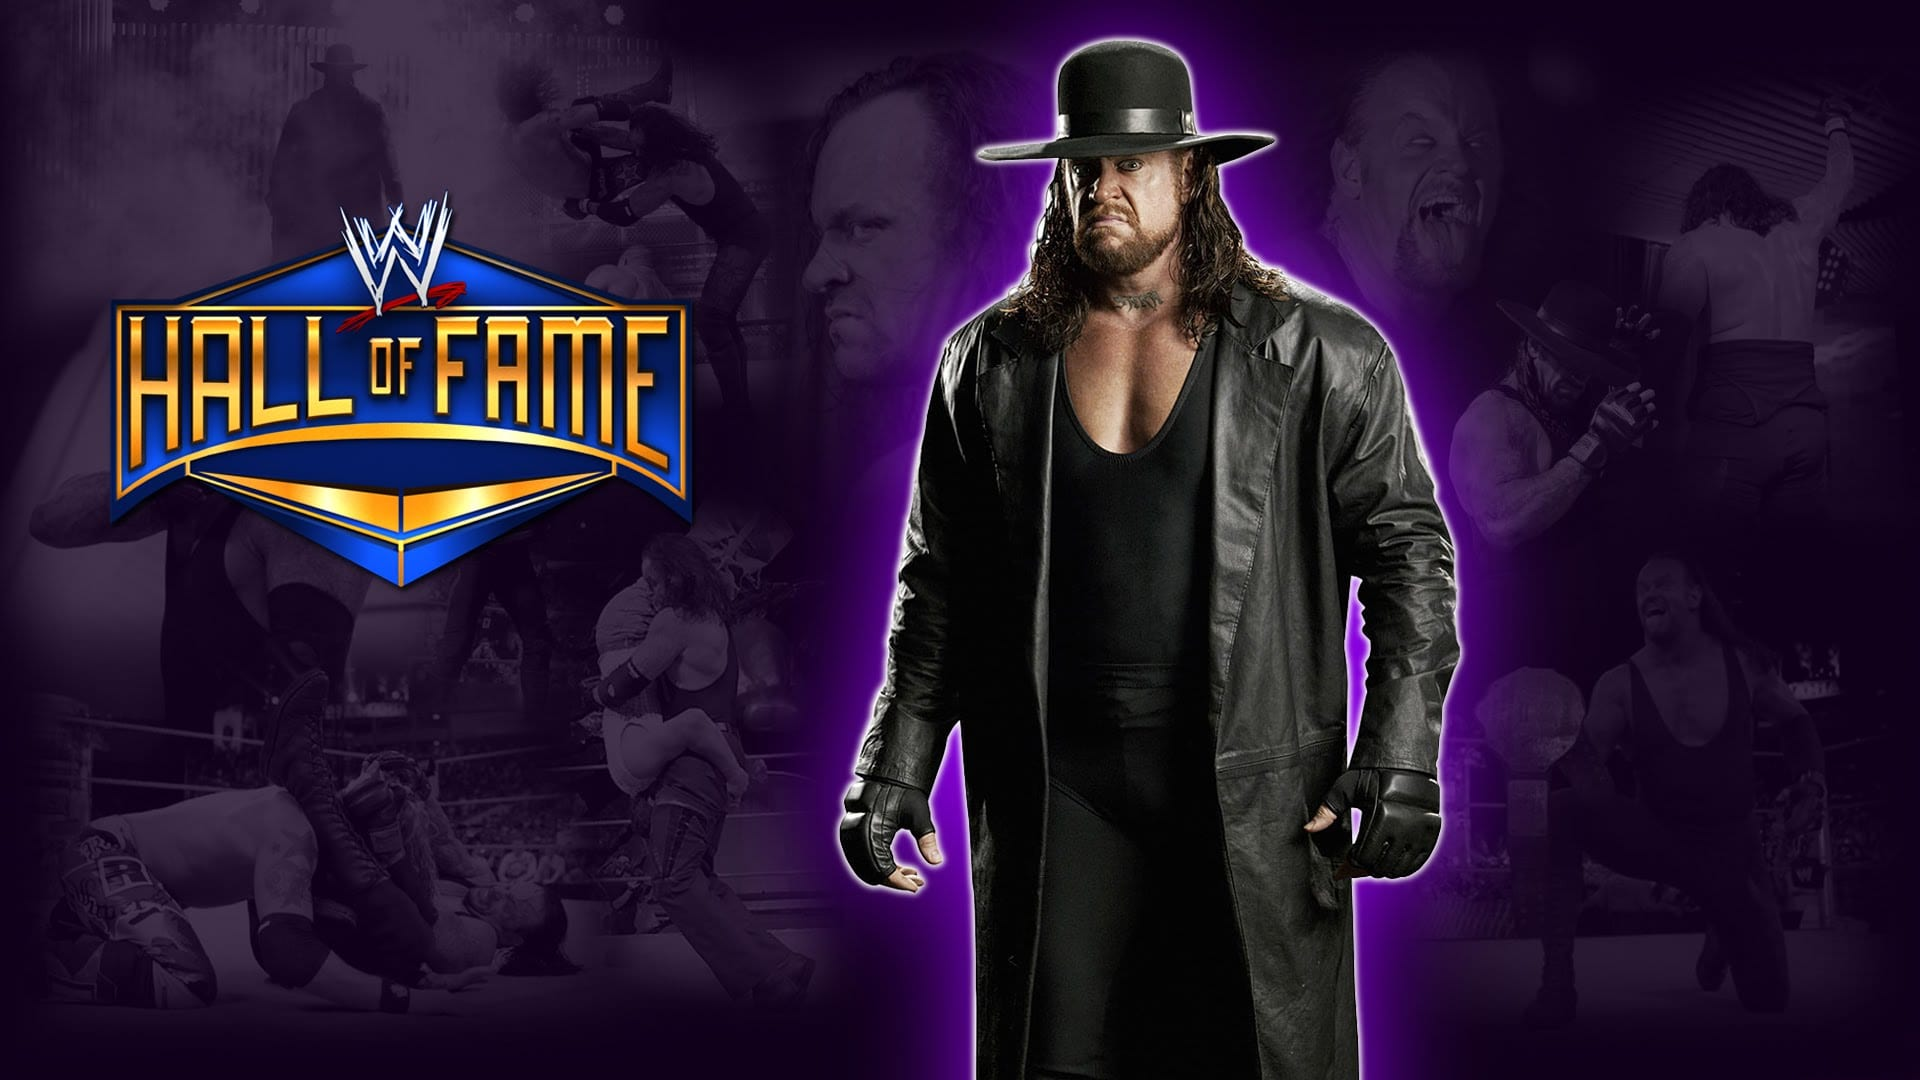 The Undertaker Expected To Headline WWE Hall of Fame Class of 2018